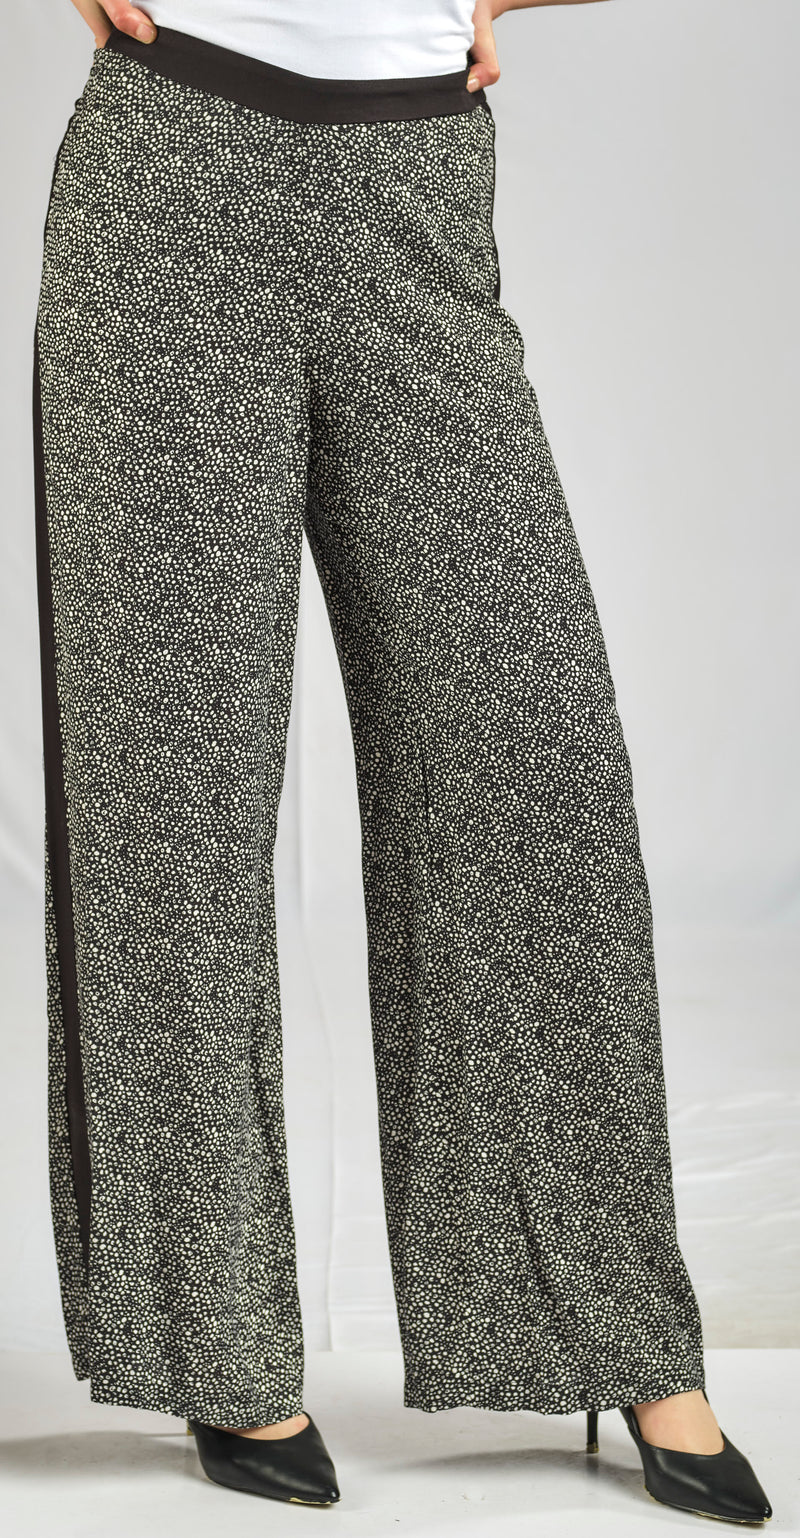 CREPE CHIFFON PRINTED PANTS WITH ELASTIC WAIST FOR EXTRA COMFORT